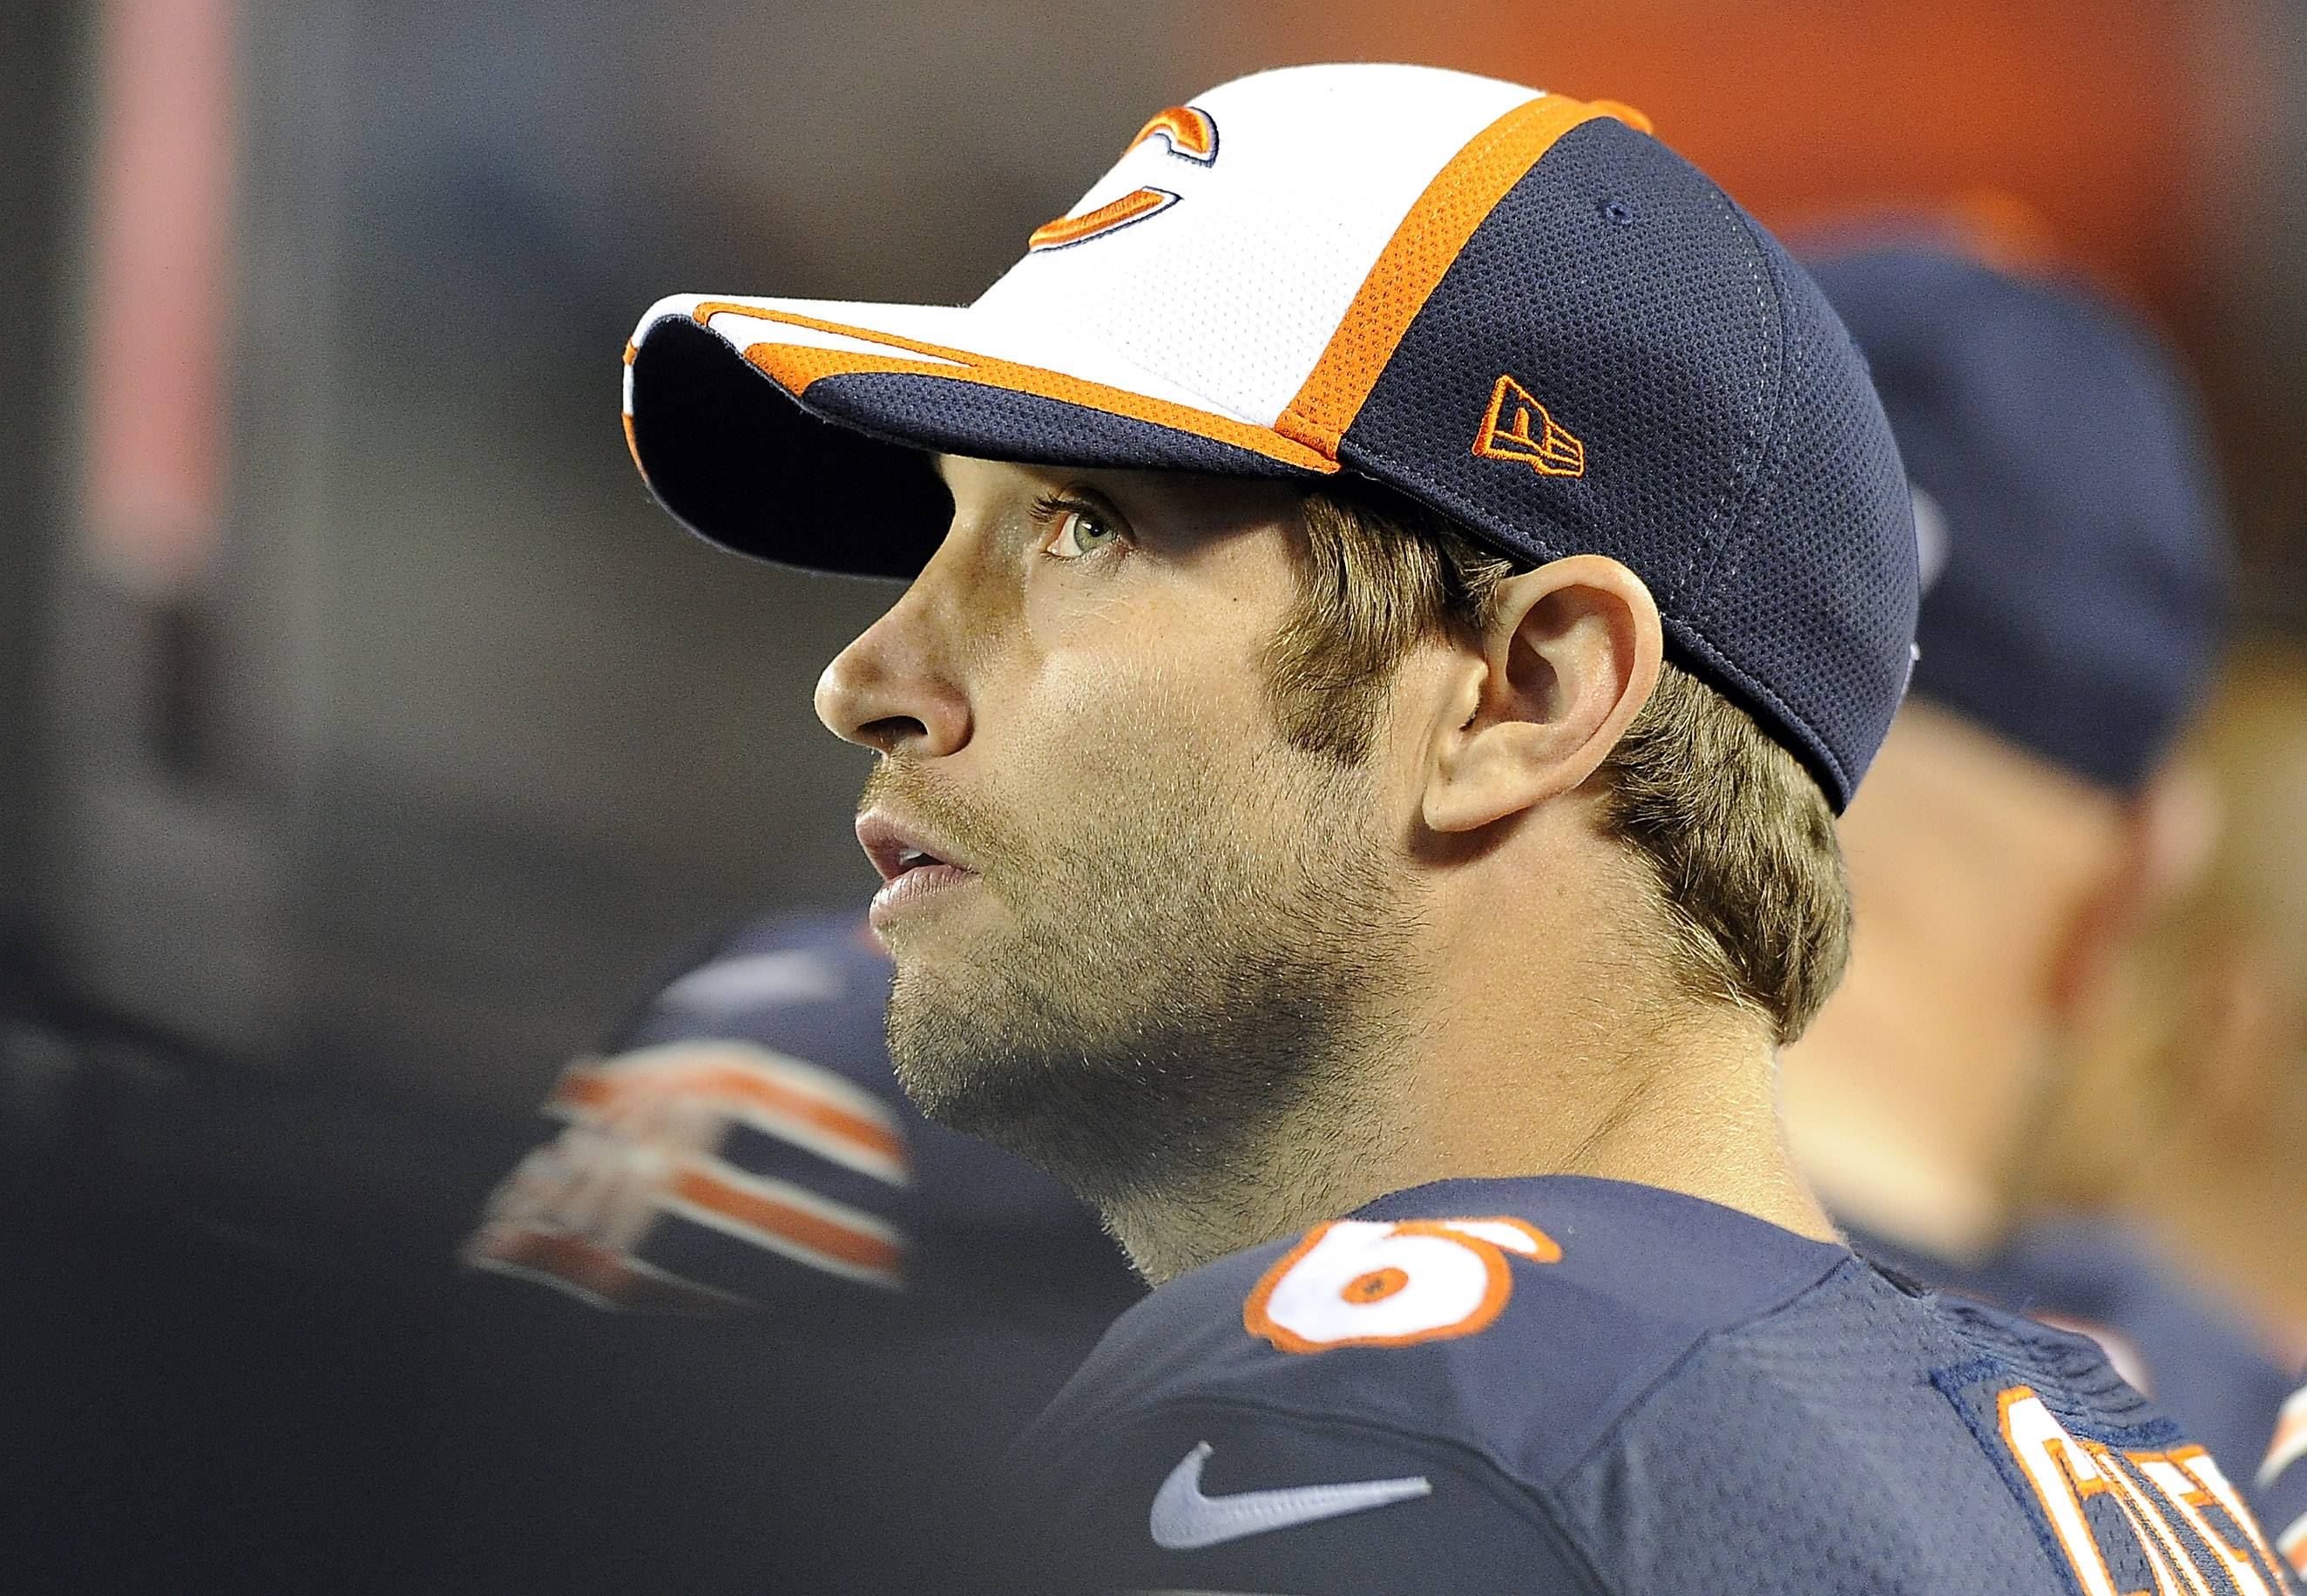 Quarterback Jay Cutler has reached the age where he's looking forward to bring everything together with the Bears' high-powered offense.